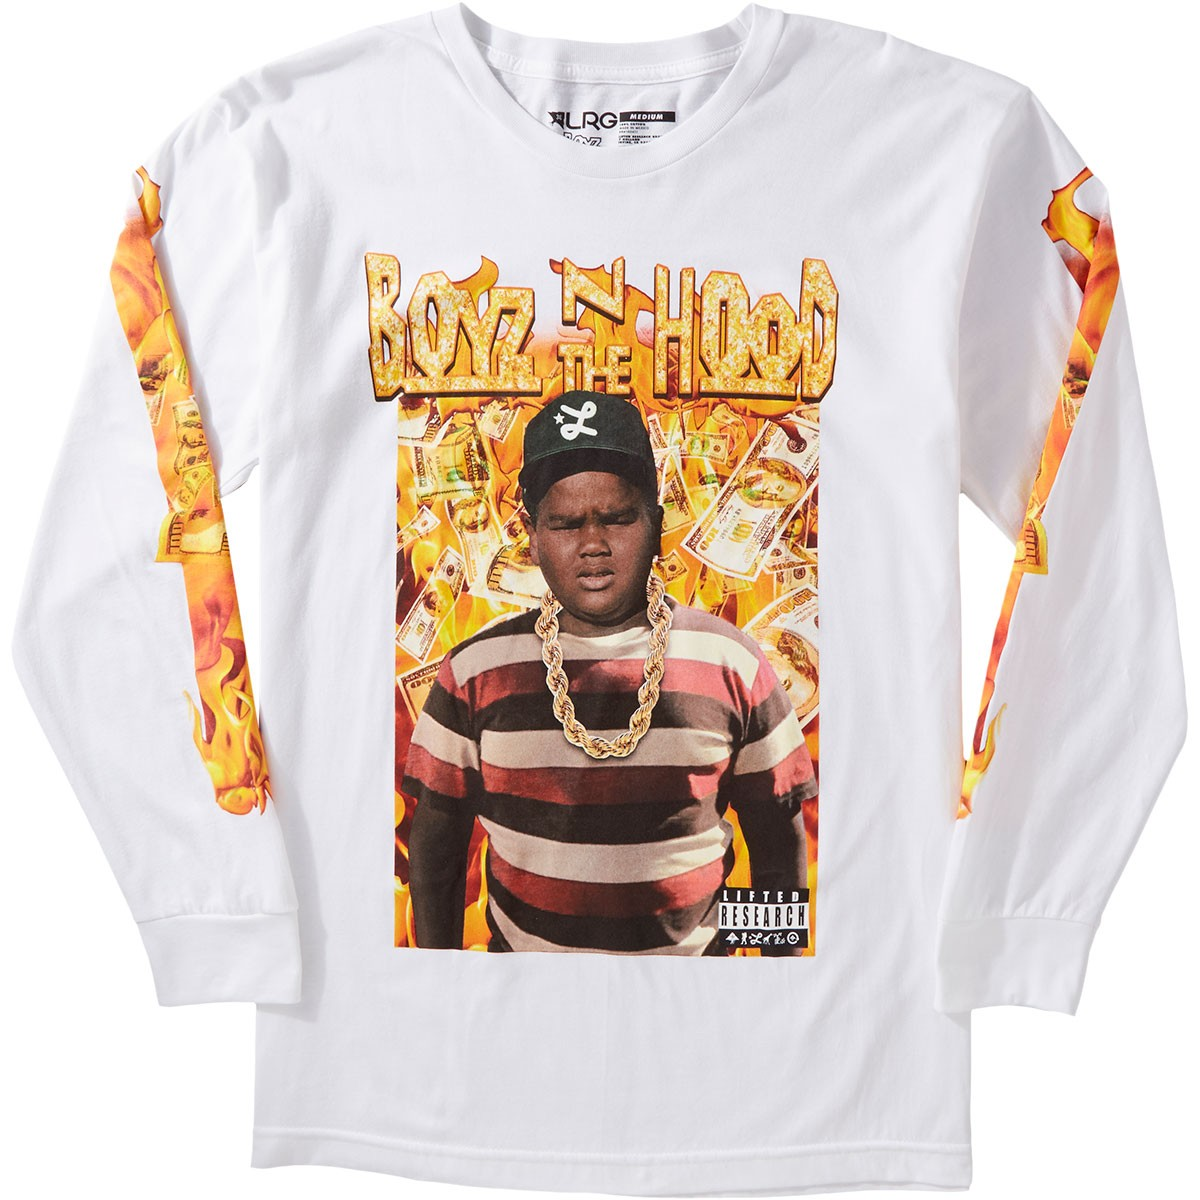 Lrg X Boyz N The Hood Dough Boy Longsleeve T Shirt White